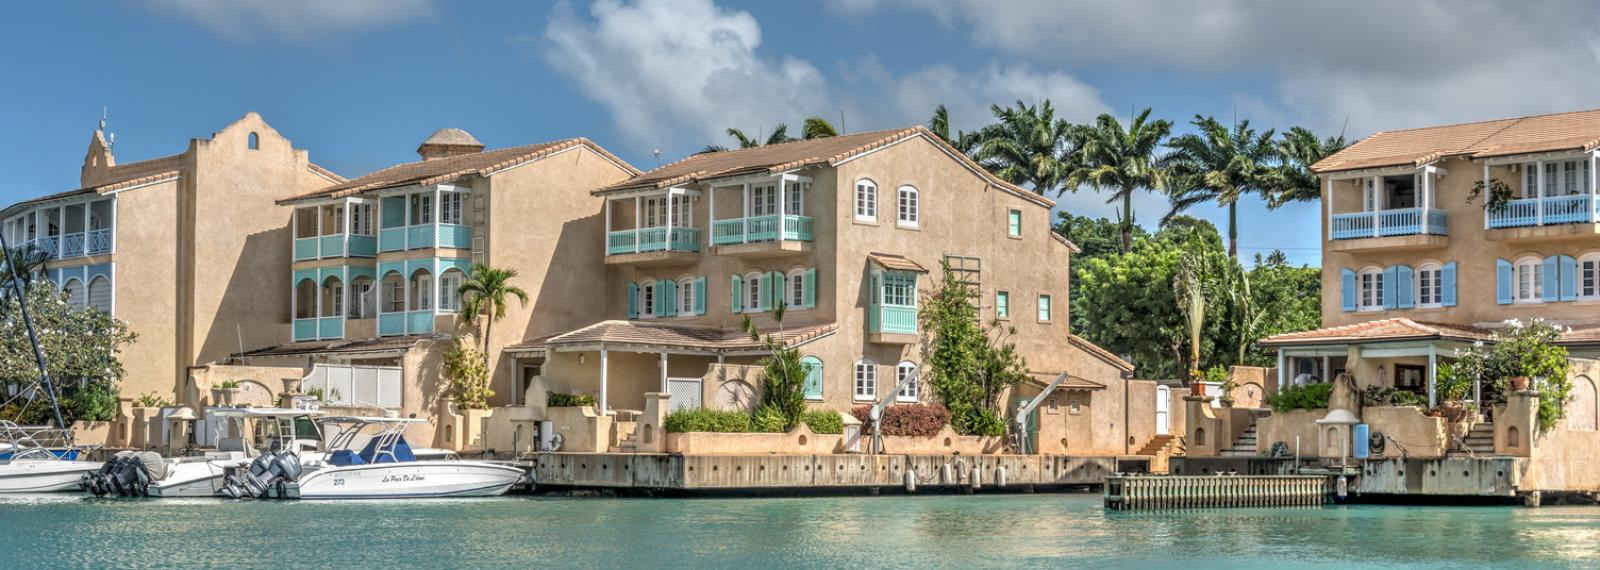 Port St Charles - Beachfront - St Peter - Stay 7 nights and pay only for 6